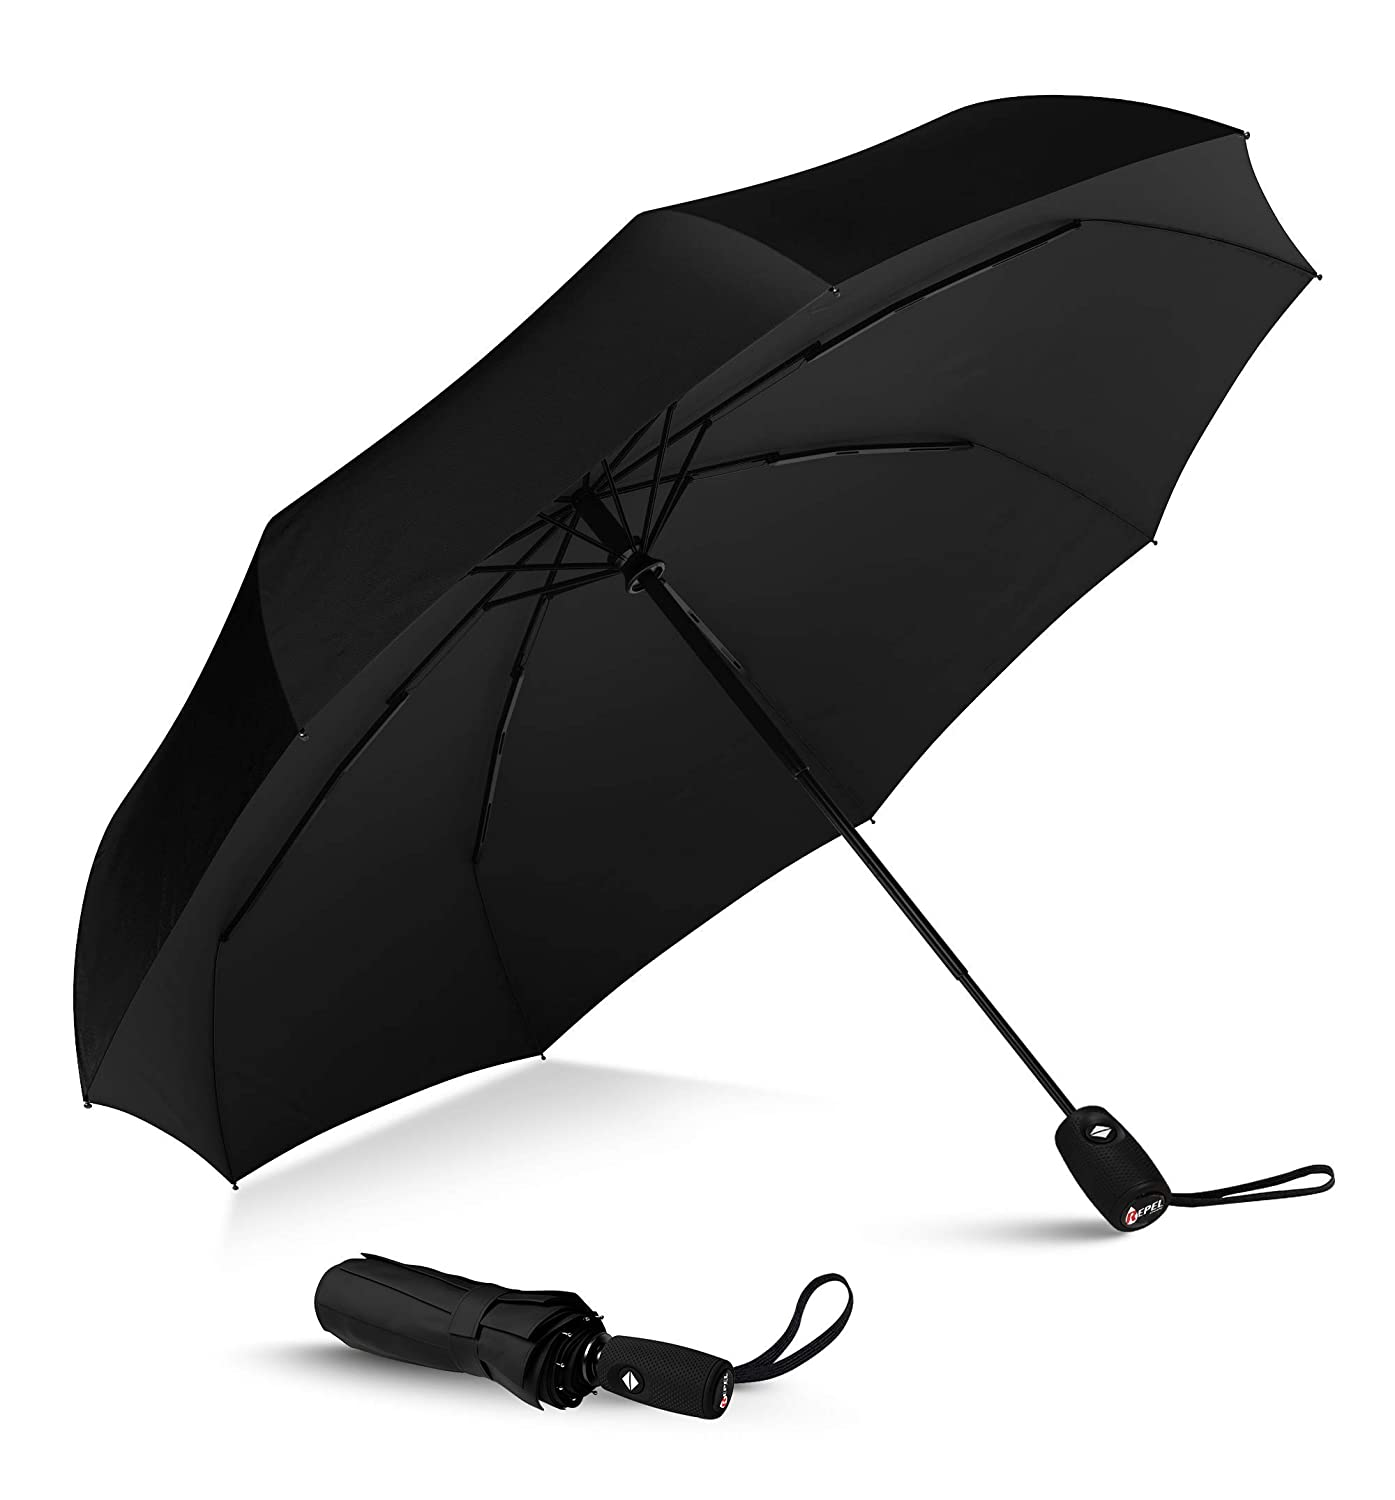 Top 10 Best Umbrellas